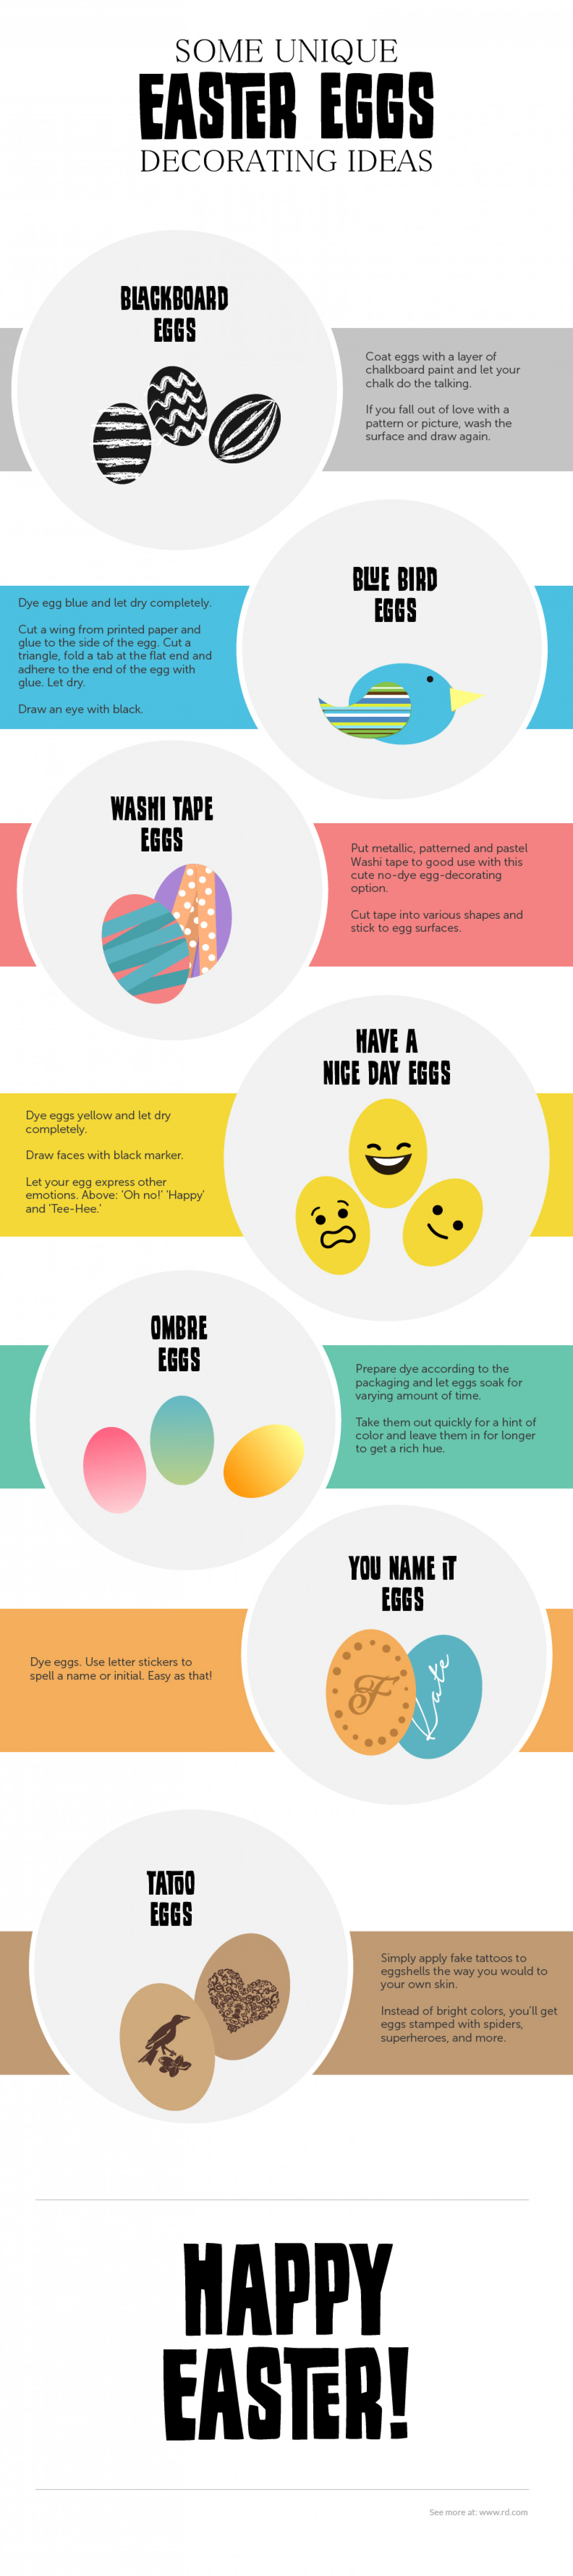 Some Unique Easter Eggs Decorating Ideas Infographic